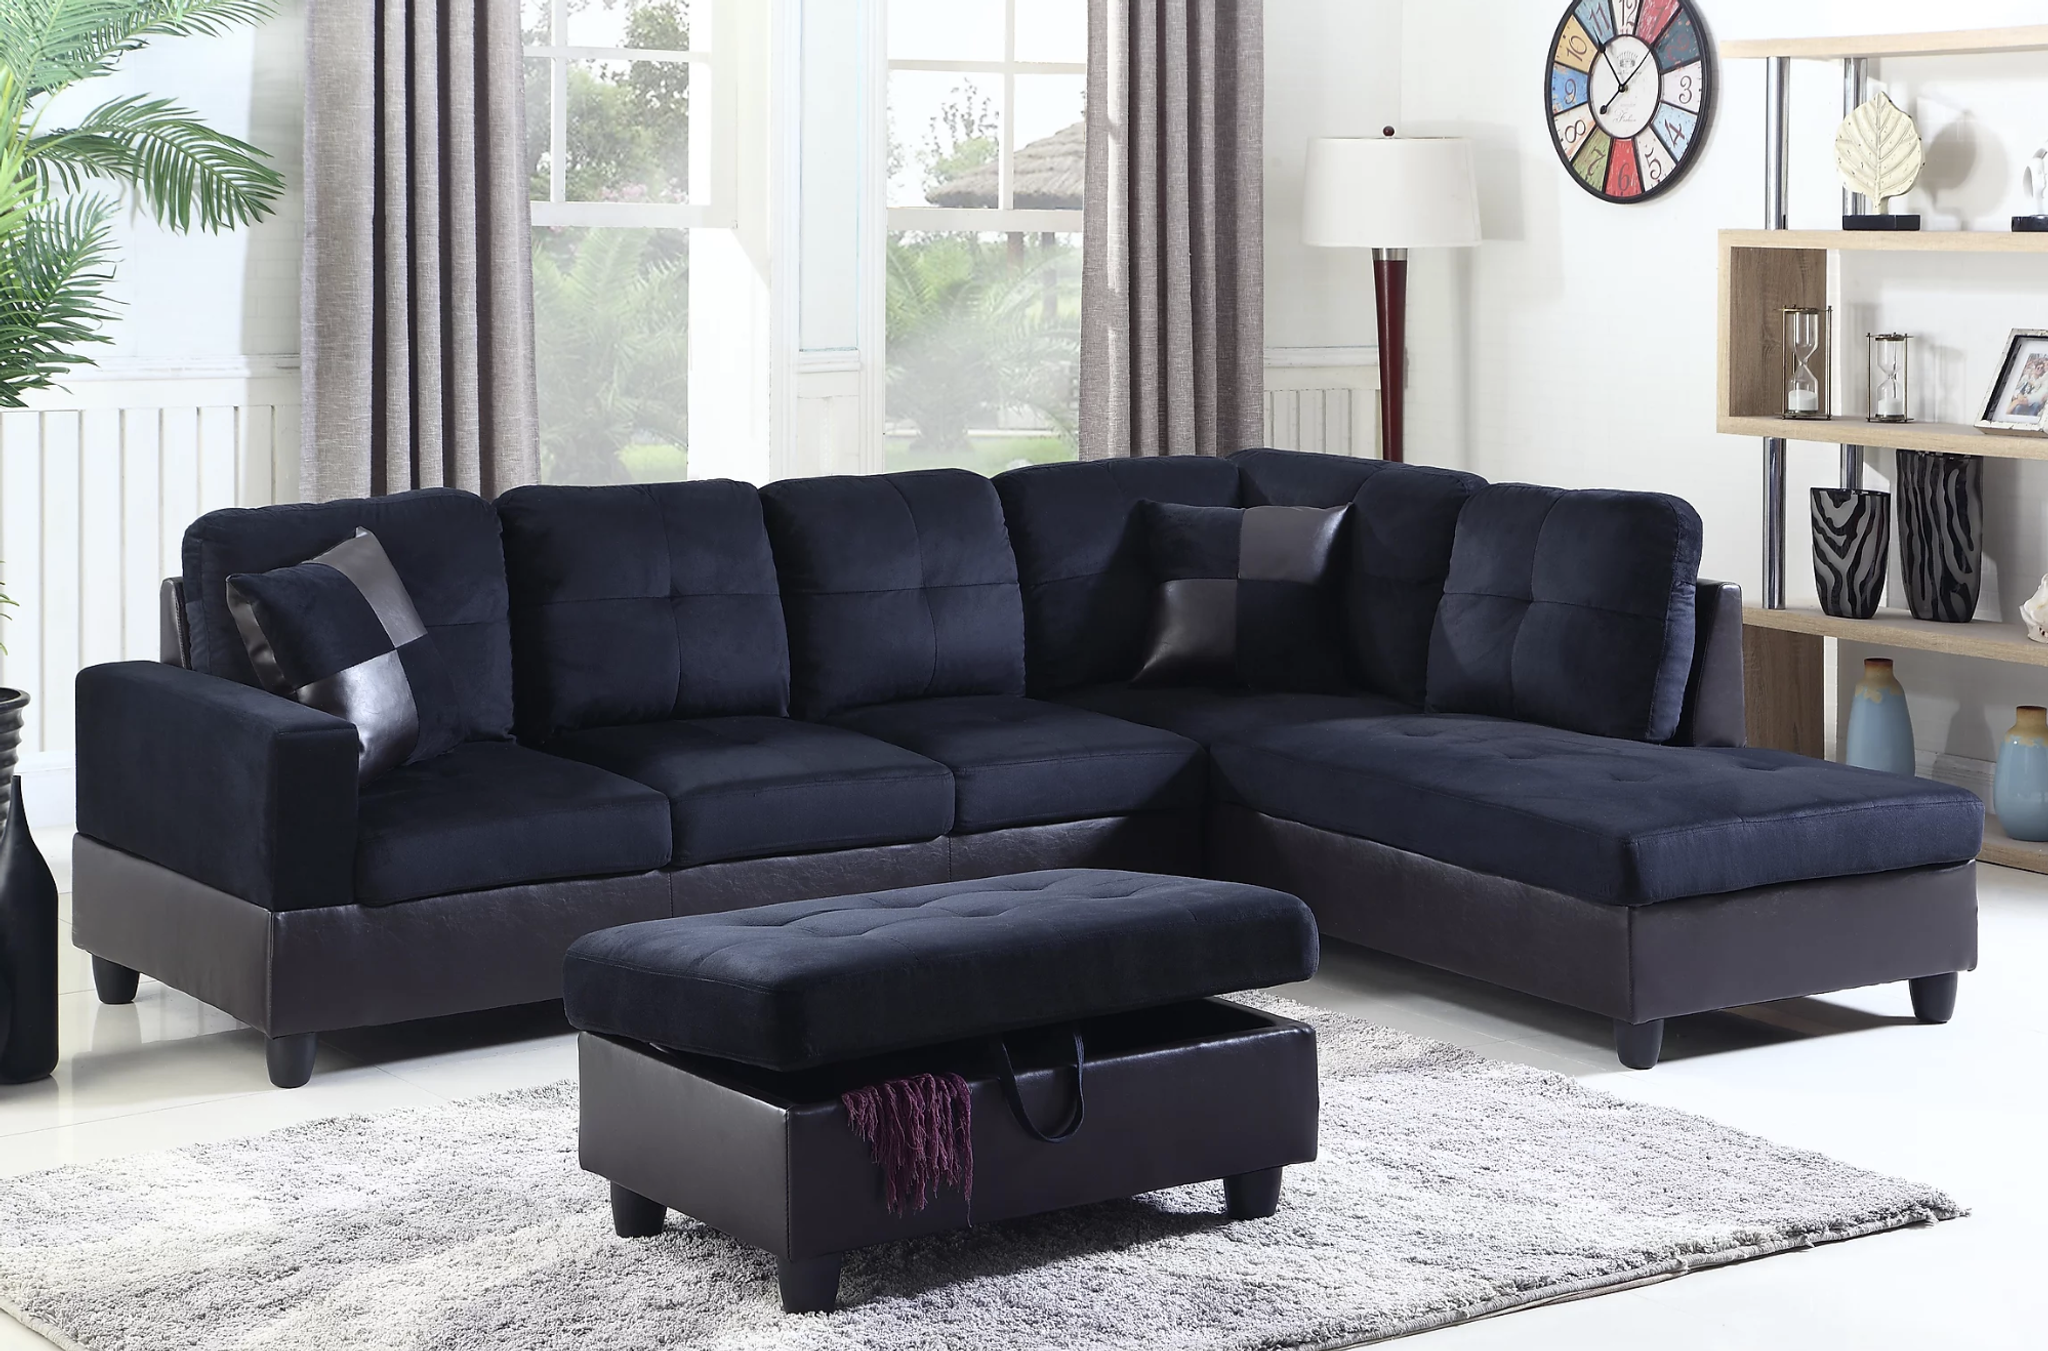 Modern Sectional 3 Pcs Sofa Chaise And Storage Ottoman Mid Night Blue Km Home Furniture